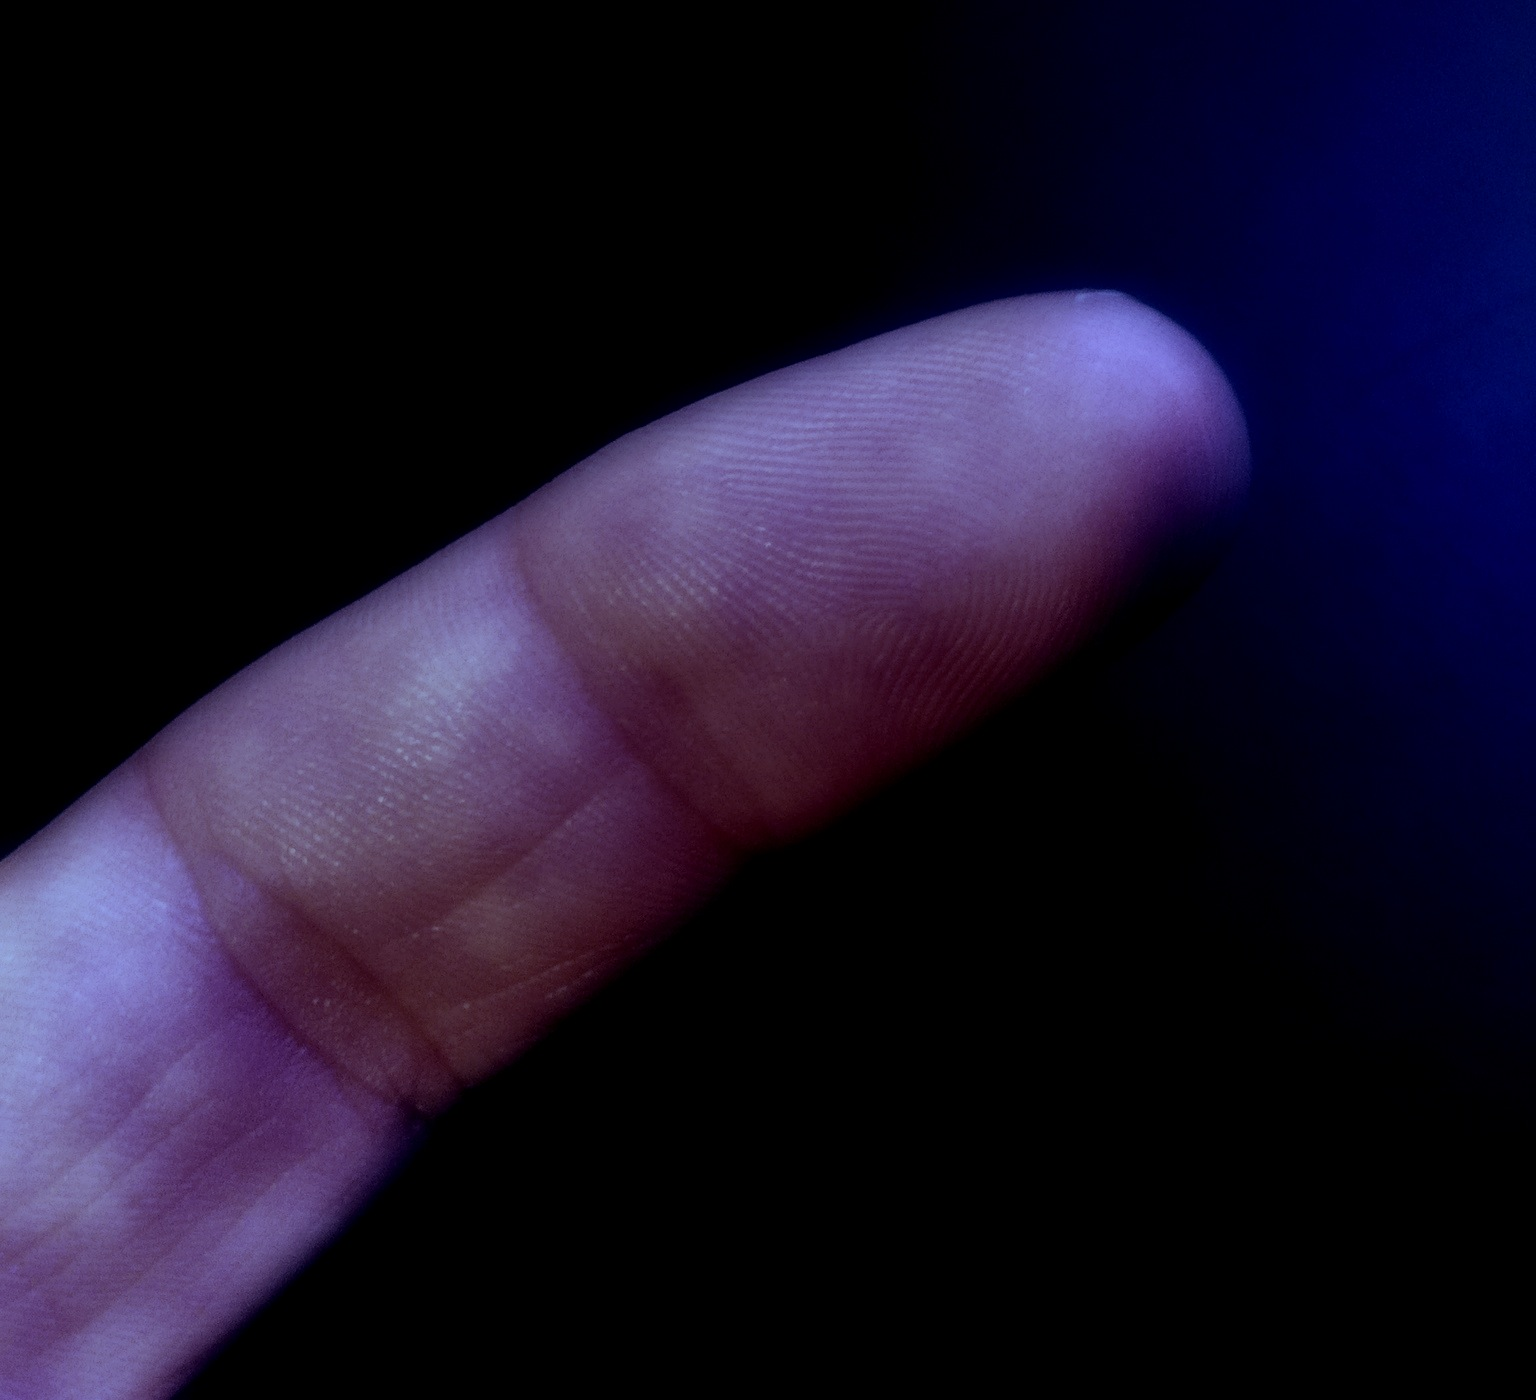 How do I get the Police to Destroy my Fingerprint Records? |